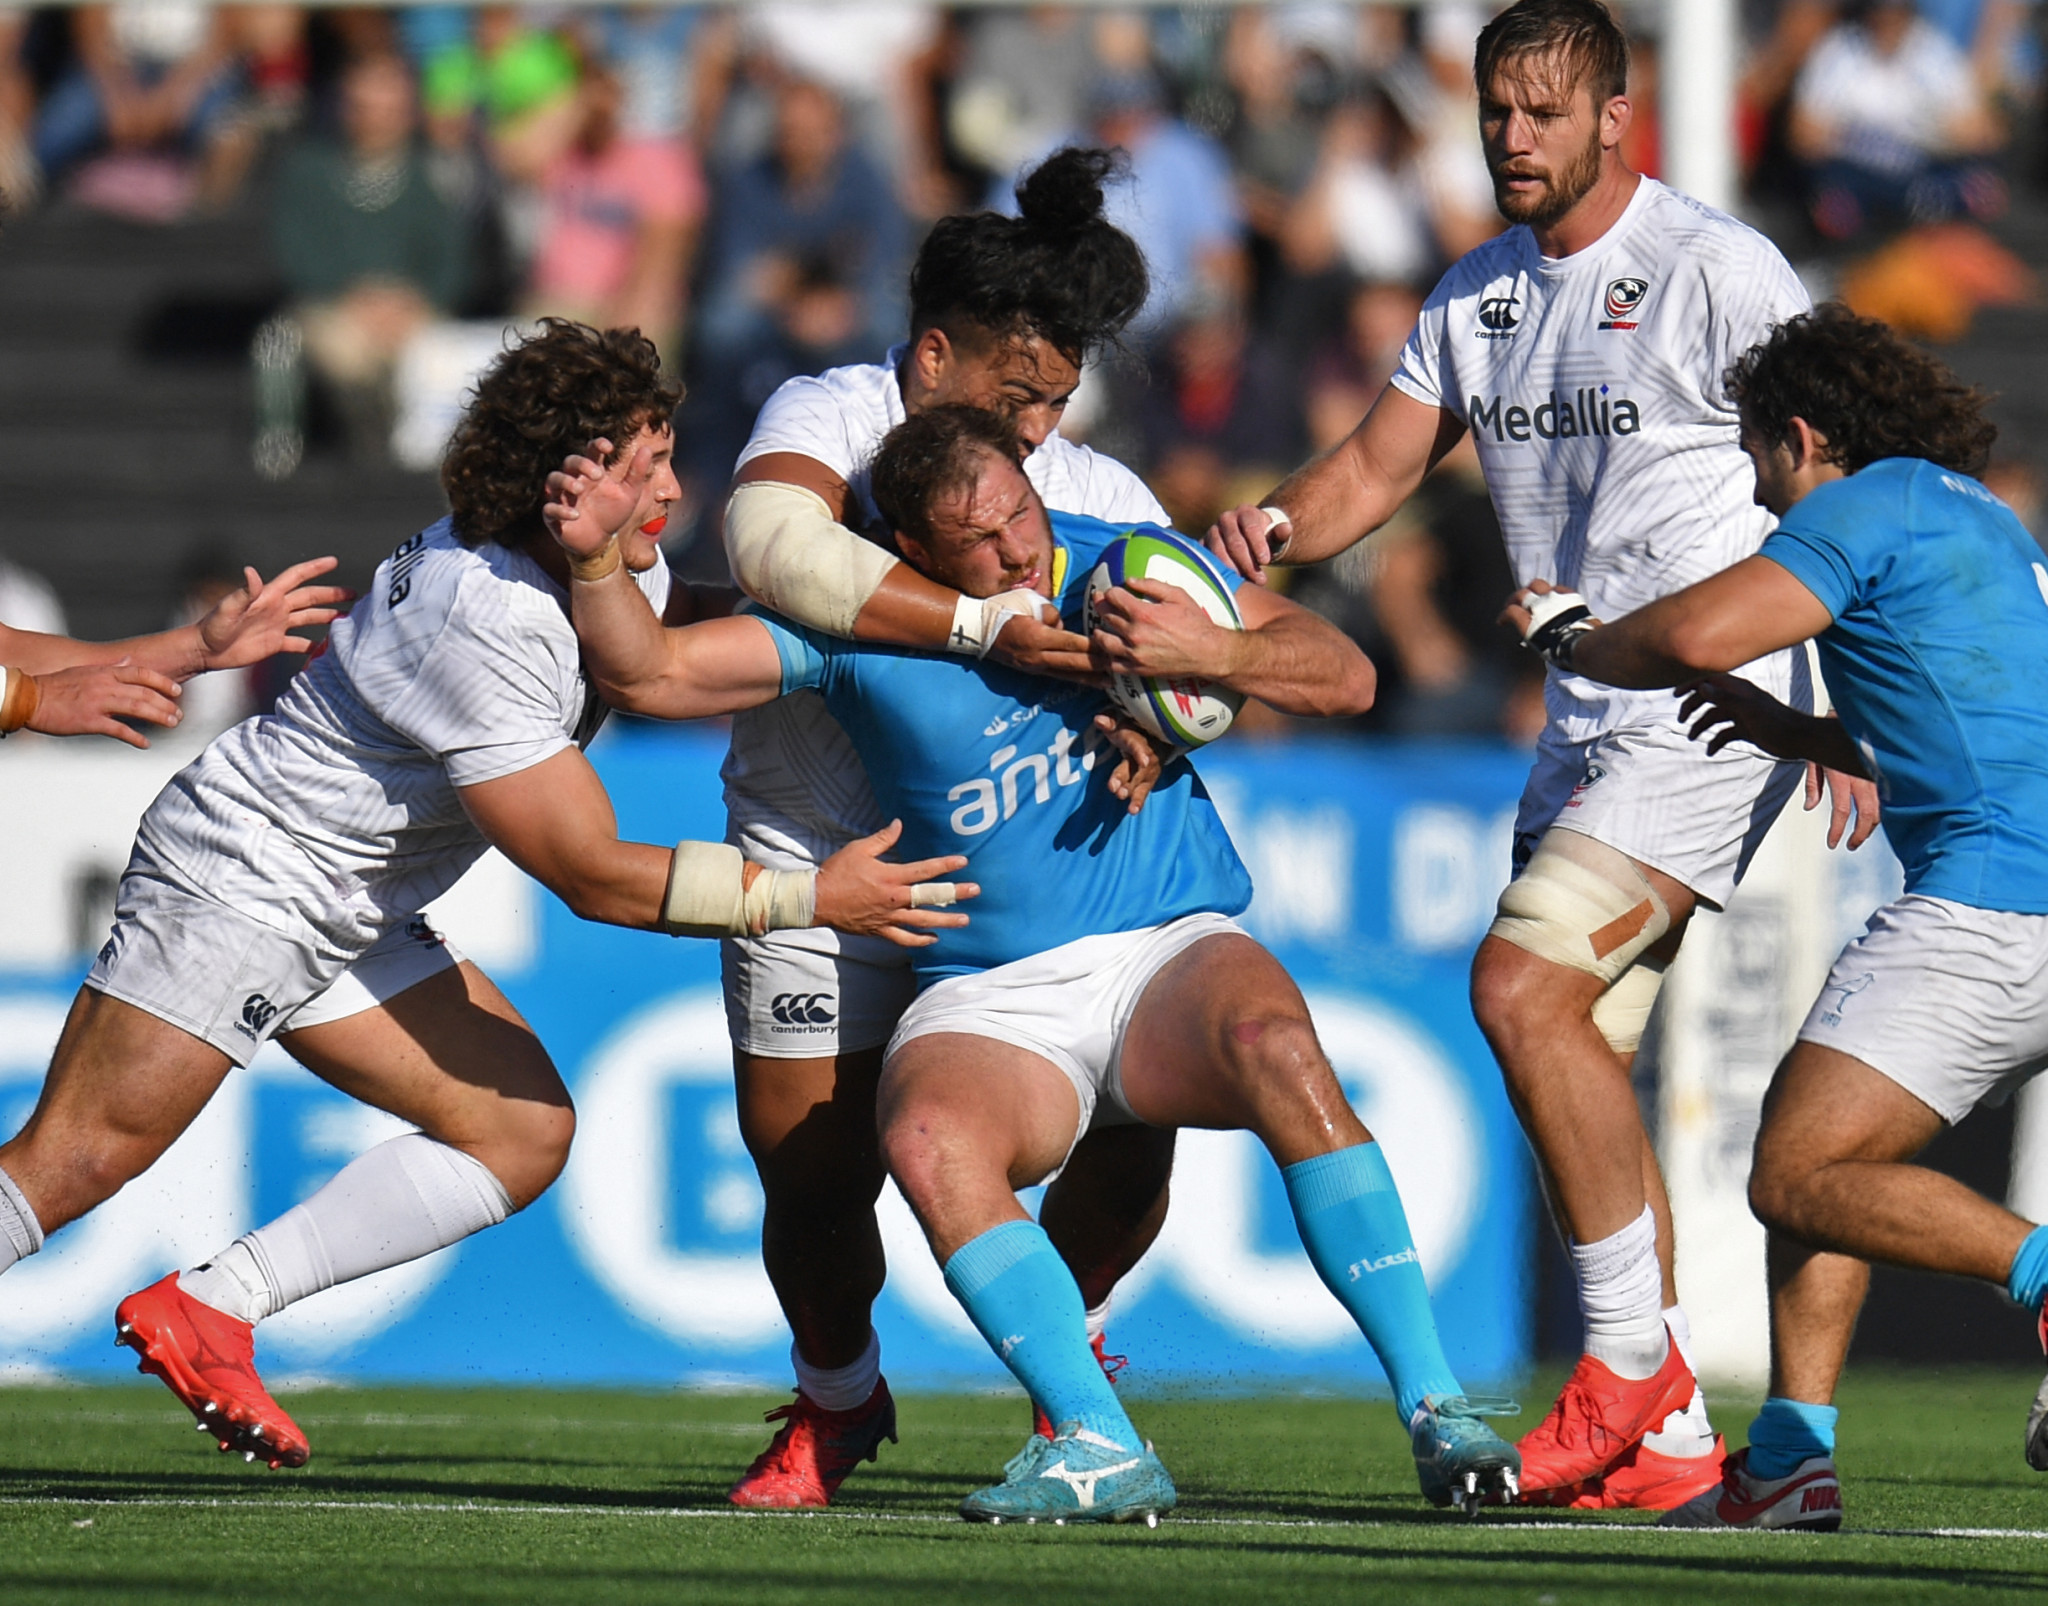 Uruguay qualify for third successive Rugby World Cup by beating US, while Canada miss out for first time